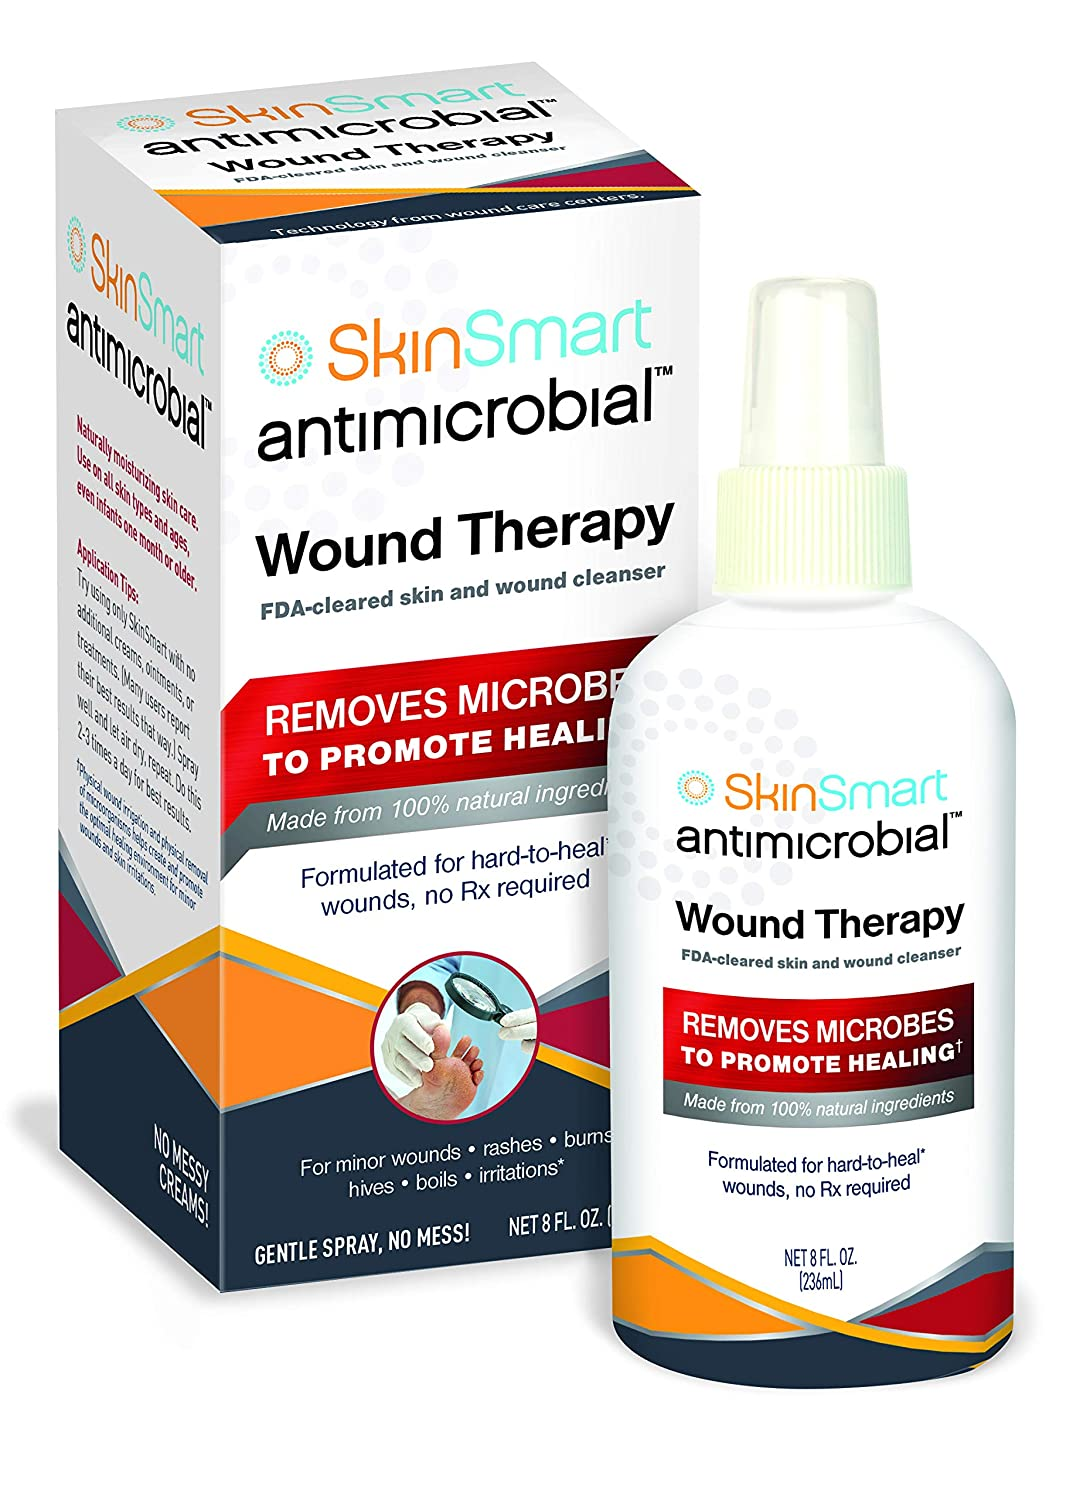 SkinSmart Wound Therapy Safely Removes Bacteria so Wounds Can Heal, 8 Ounce Clear Spray